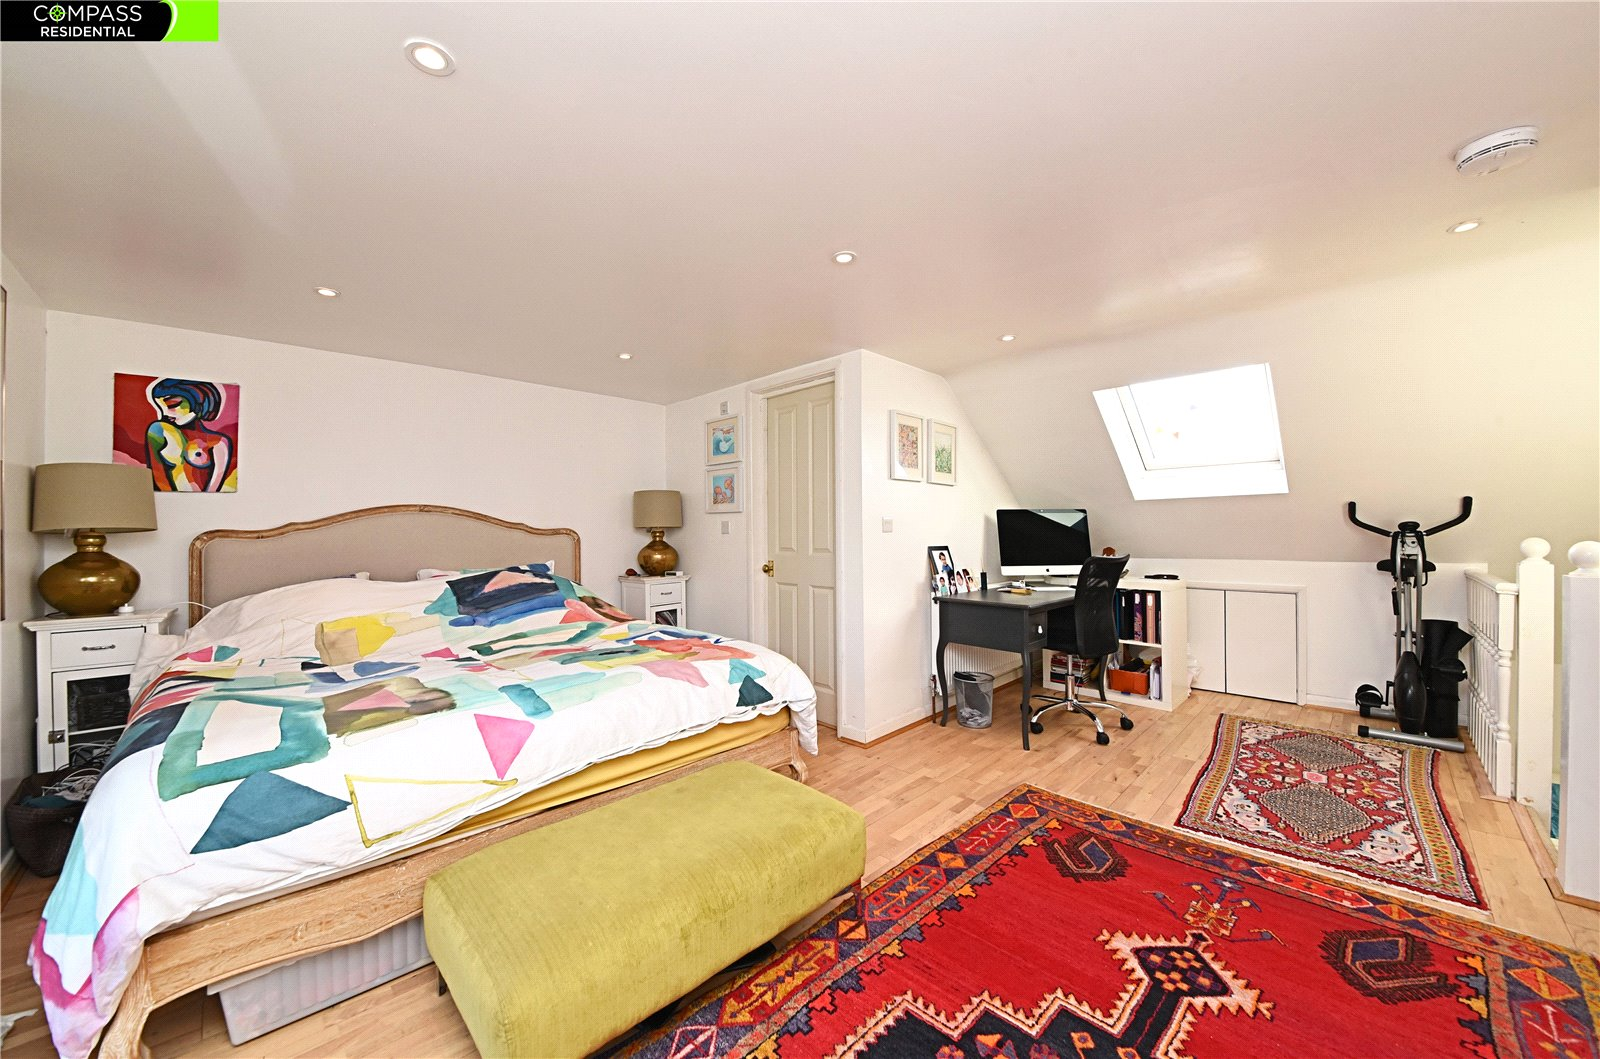 4 bed house for sale in Whetstone, N20 0HJ 4